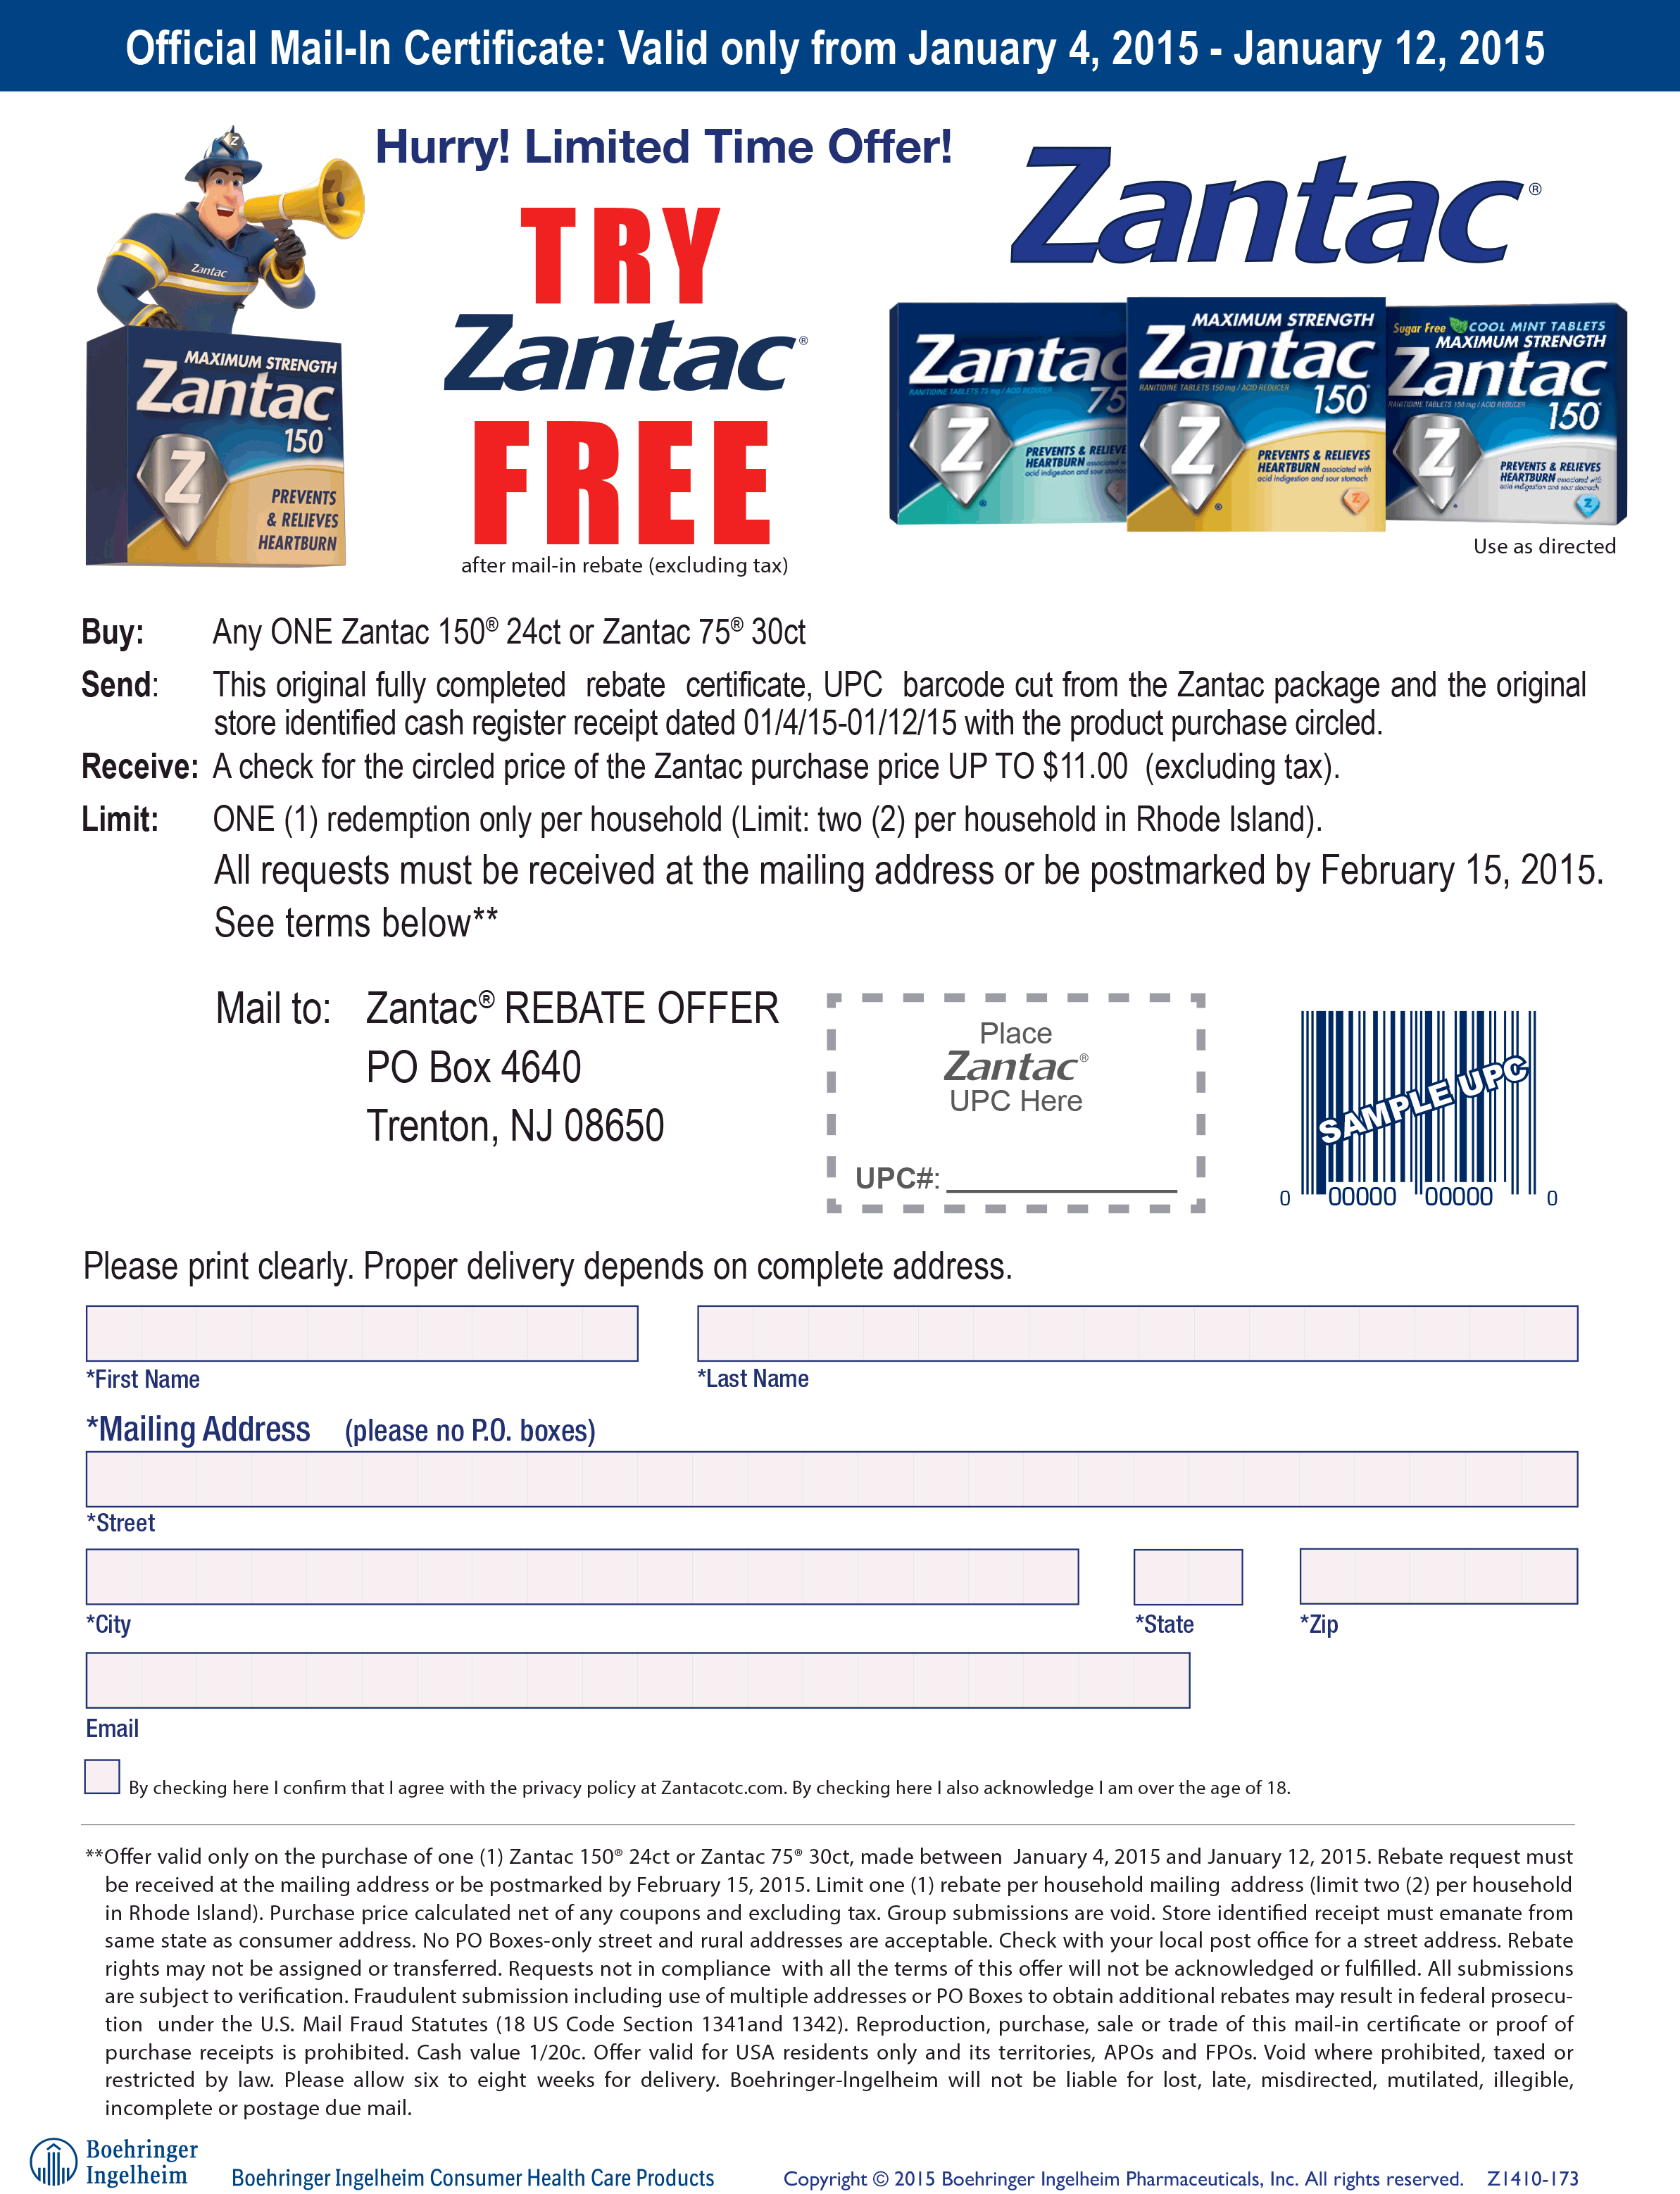 Rebate Coupon February 2017 $11 package of Zantac free via snail mail Rebate